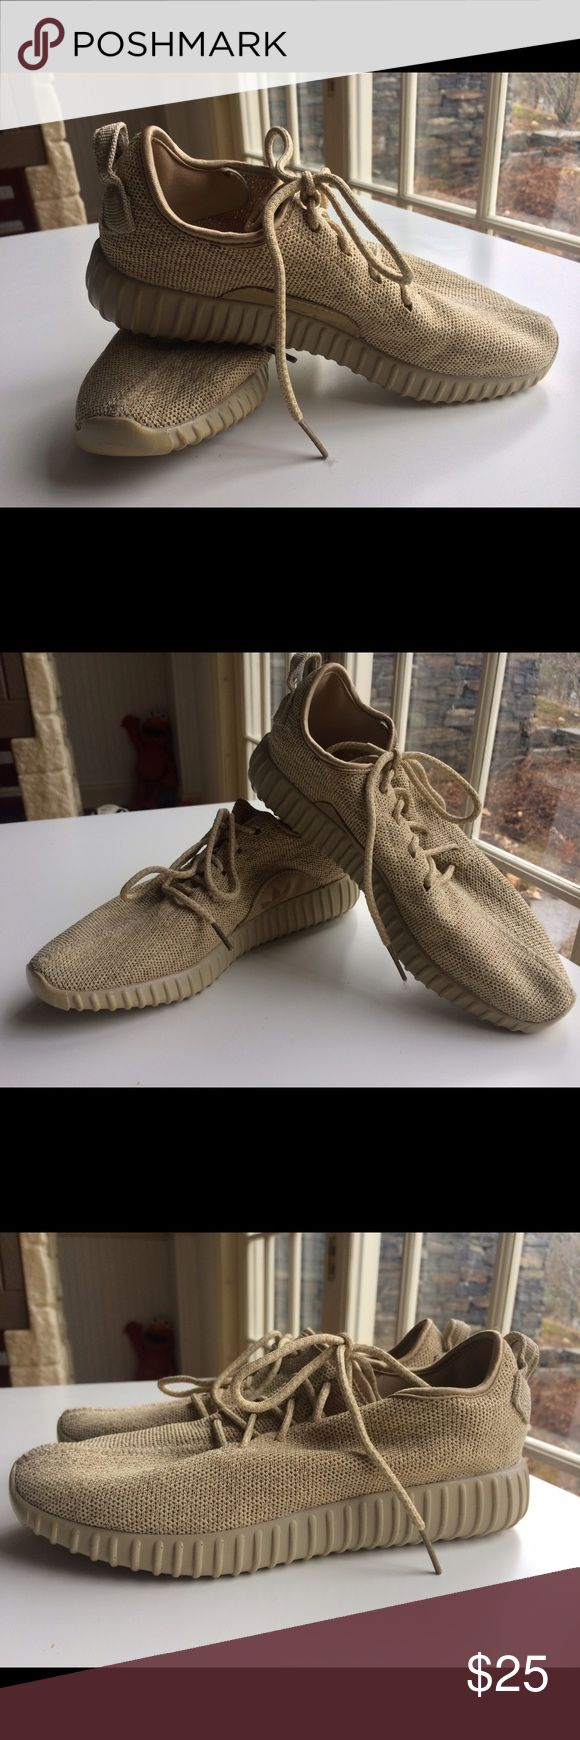 adidas shoes good year yeezy boost 950 campless